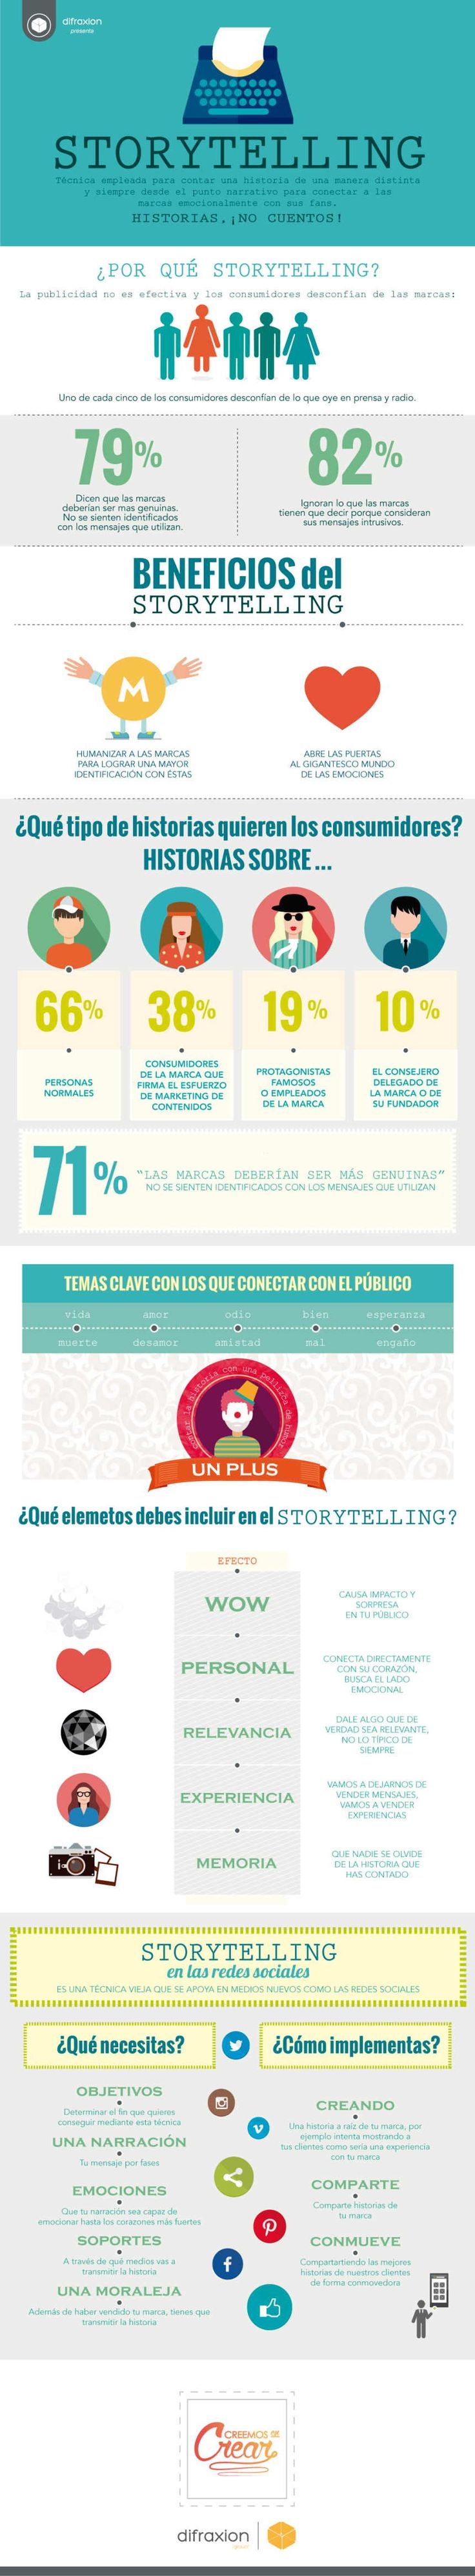 Storytelling Datos que debes conocer